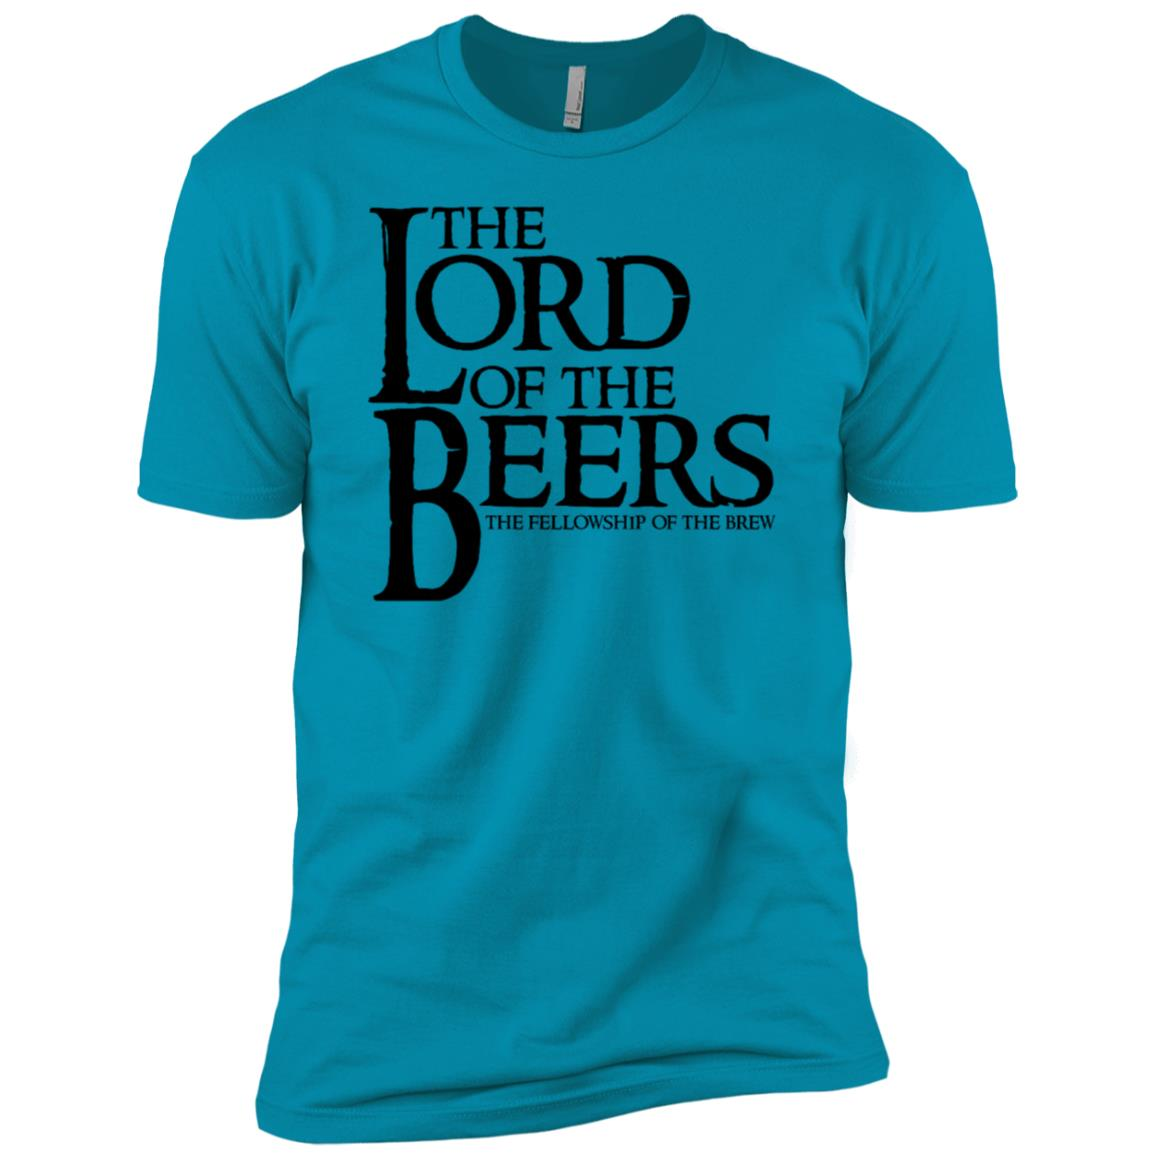 The Lord of the Beers Men Short Sleeve T-Shirt